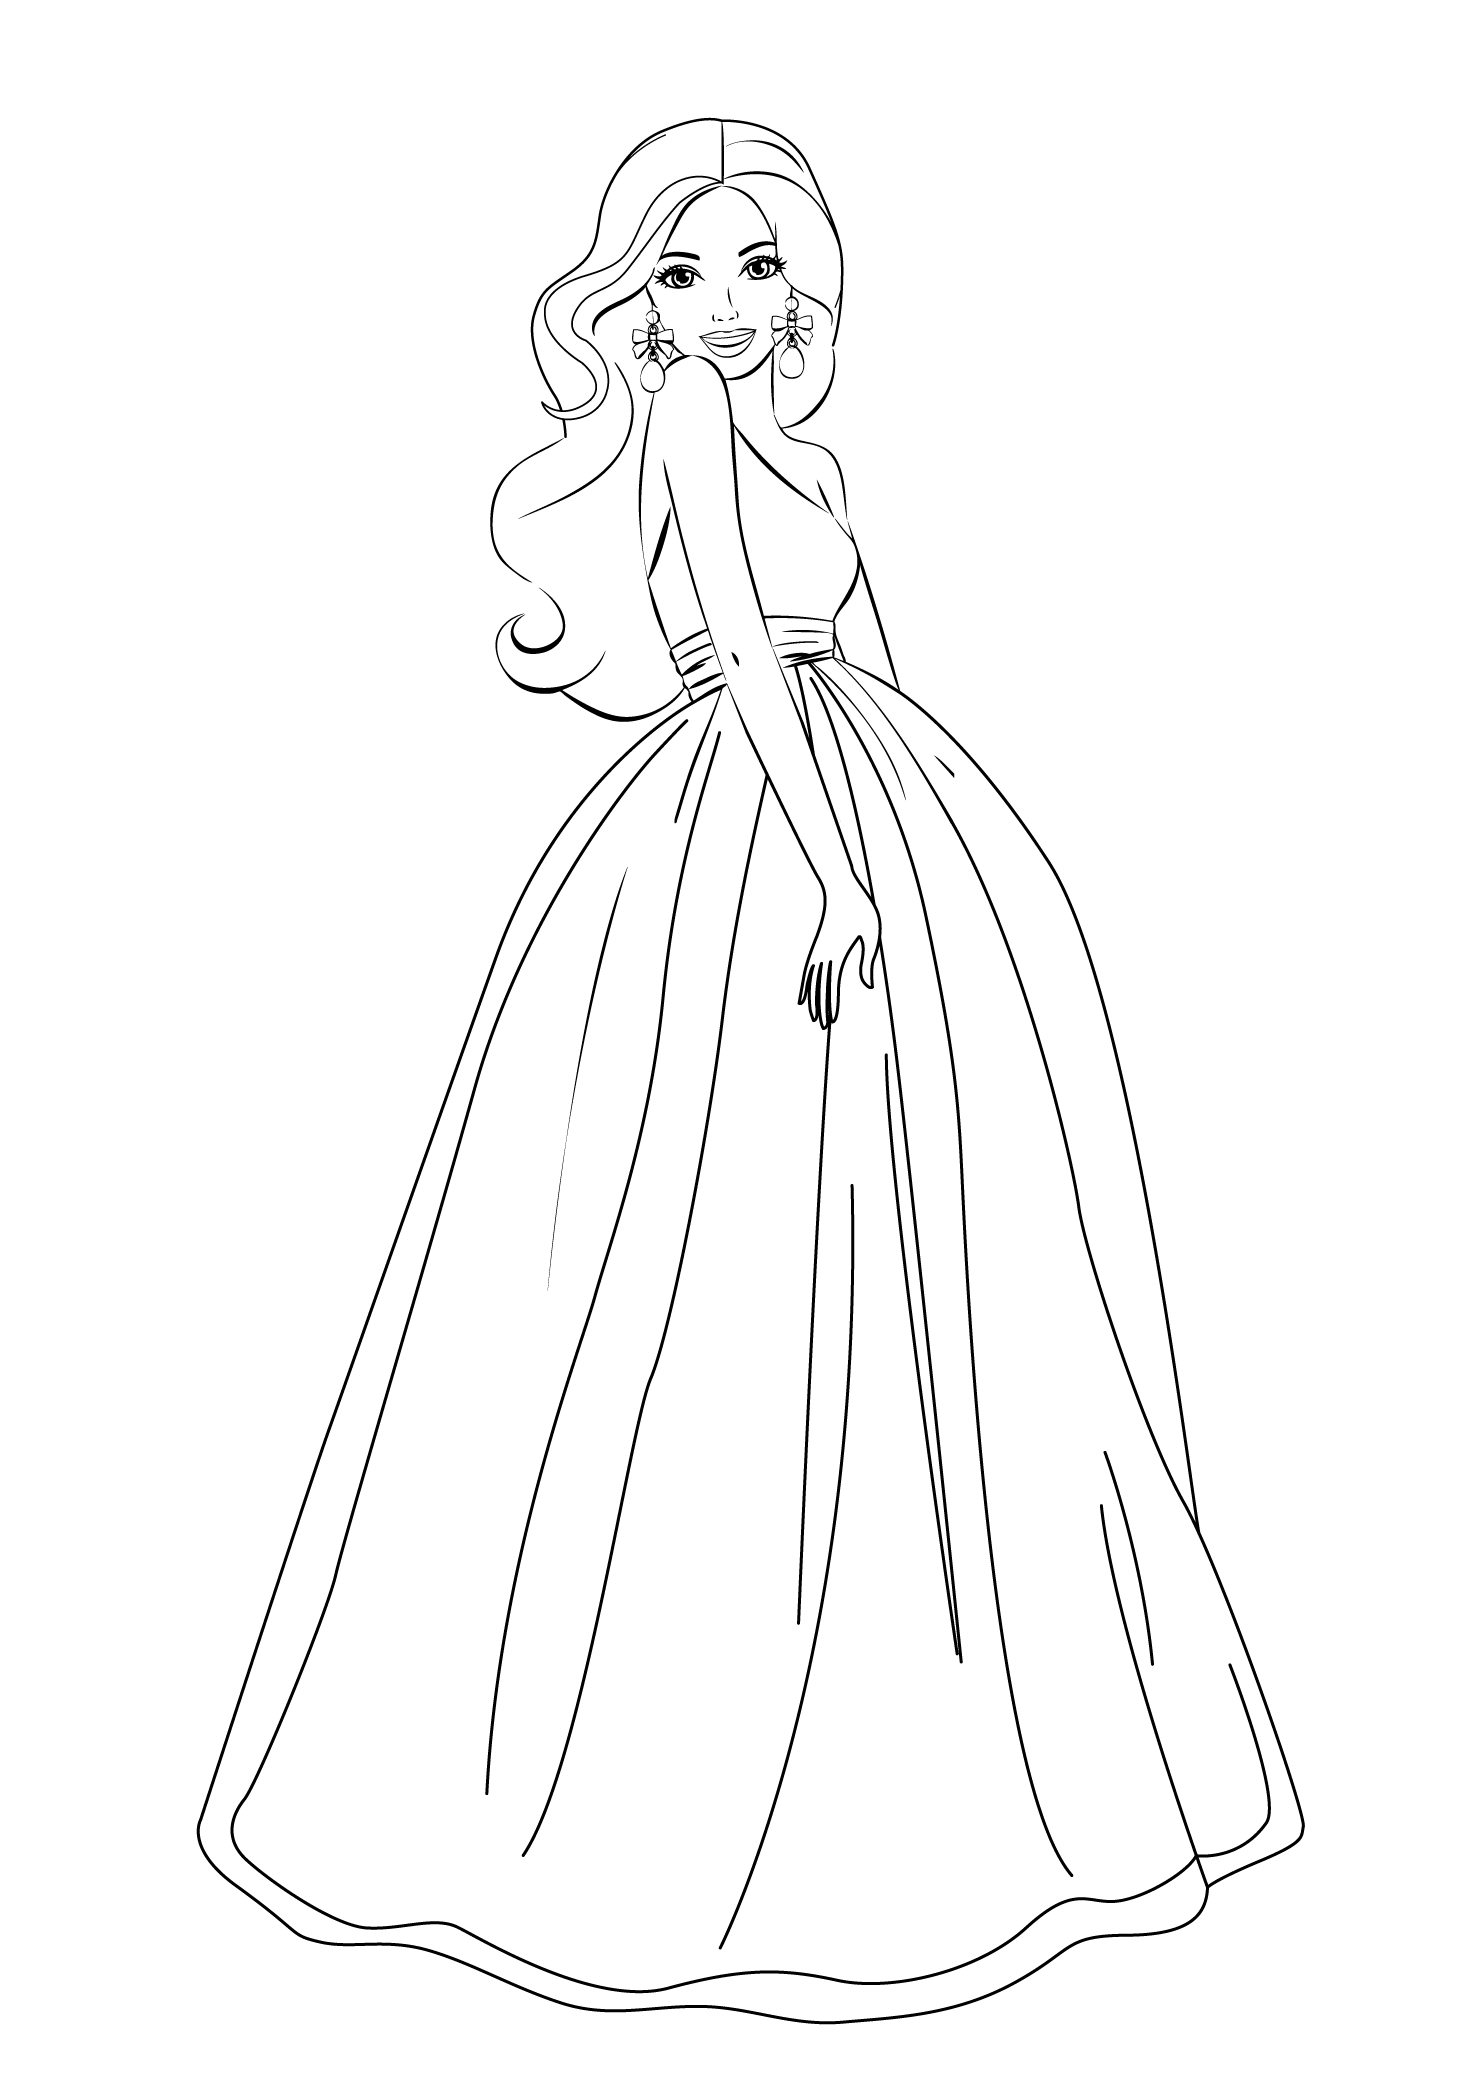 Barbie Coloring Pages For Girls Free Printable Barbie Coloring